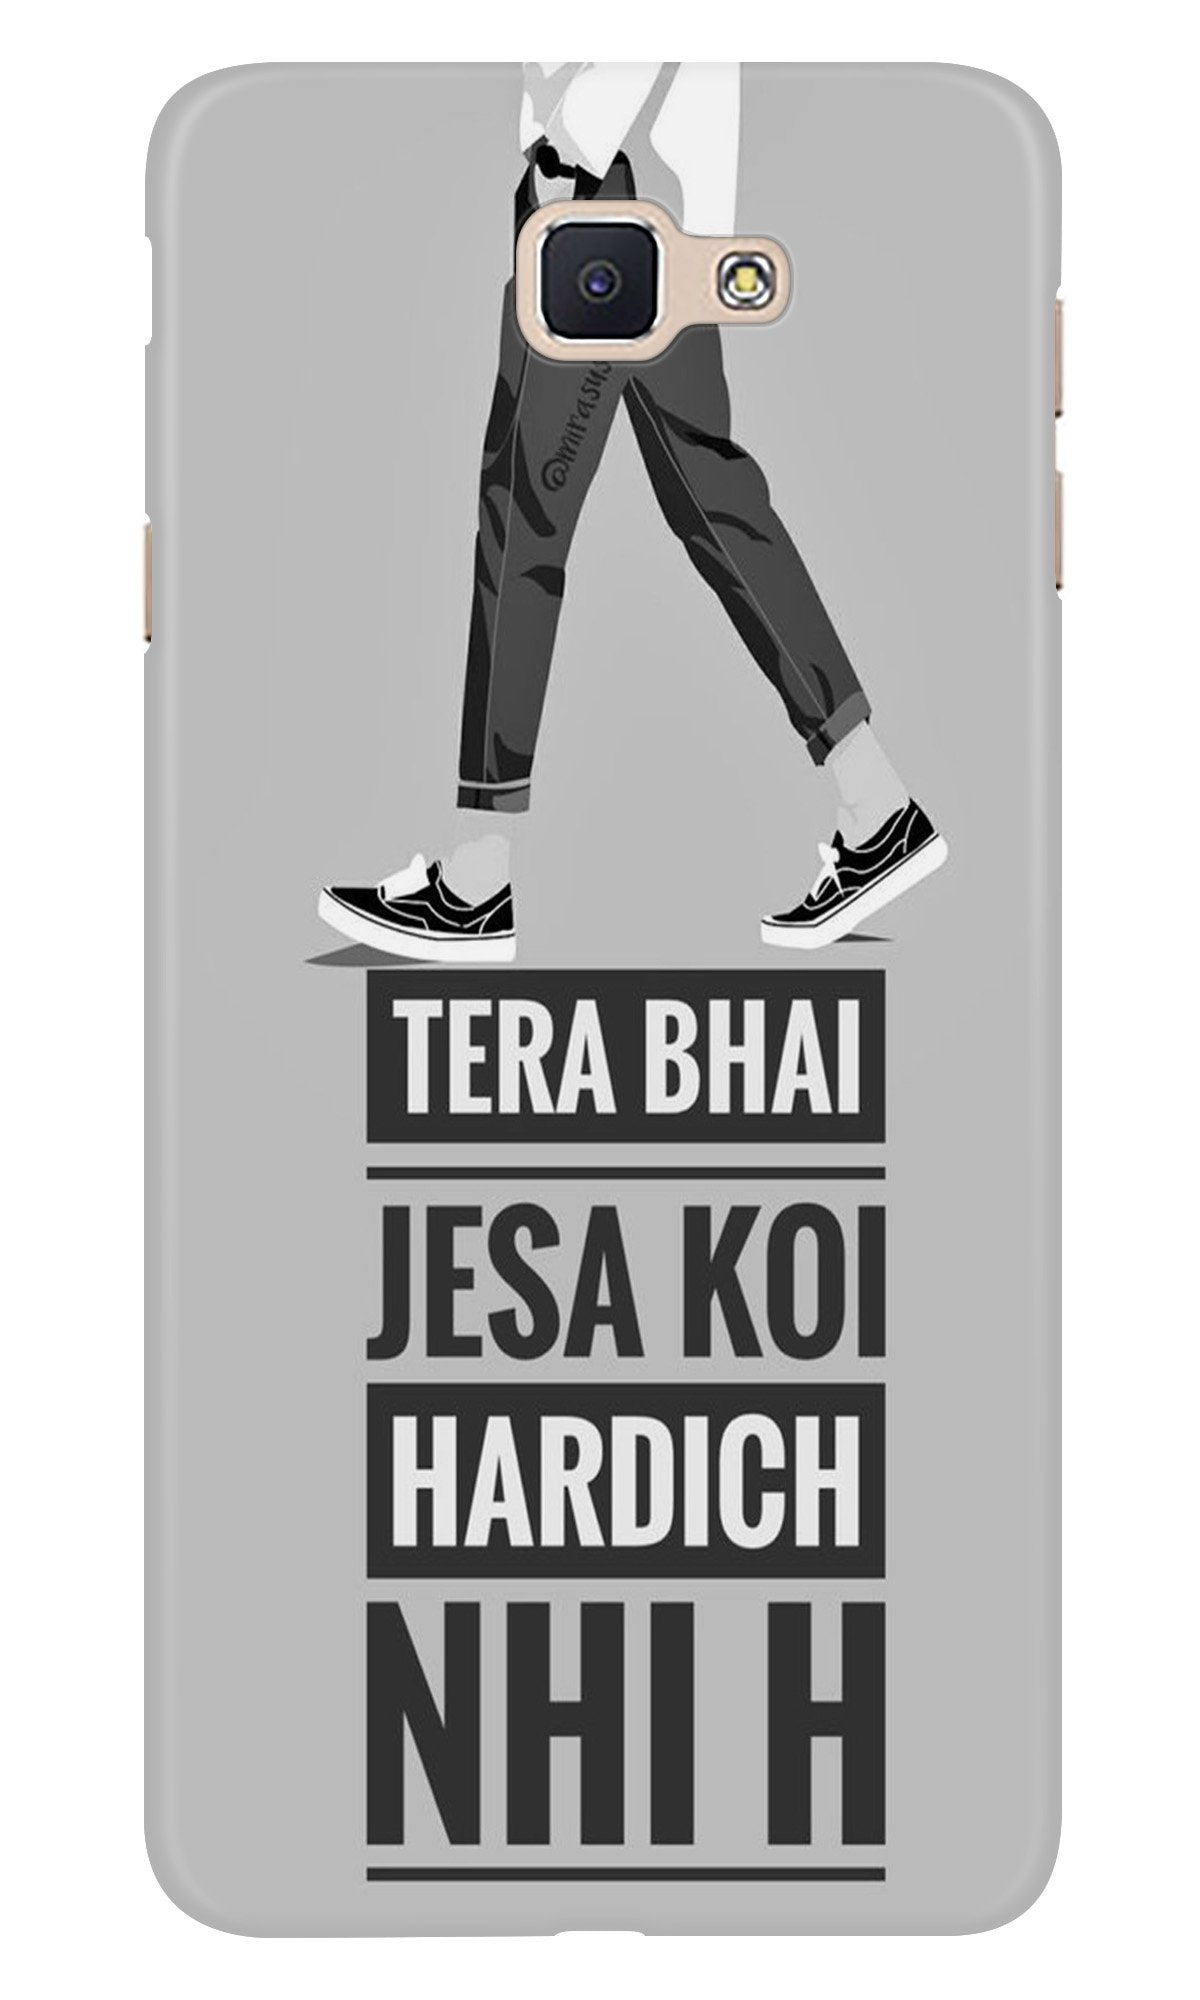 Hardich Nahi Case for Samsung Galaxy C9 Pro (Design No. 214)